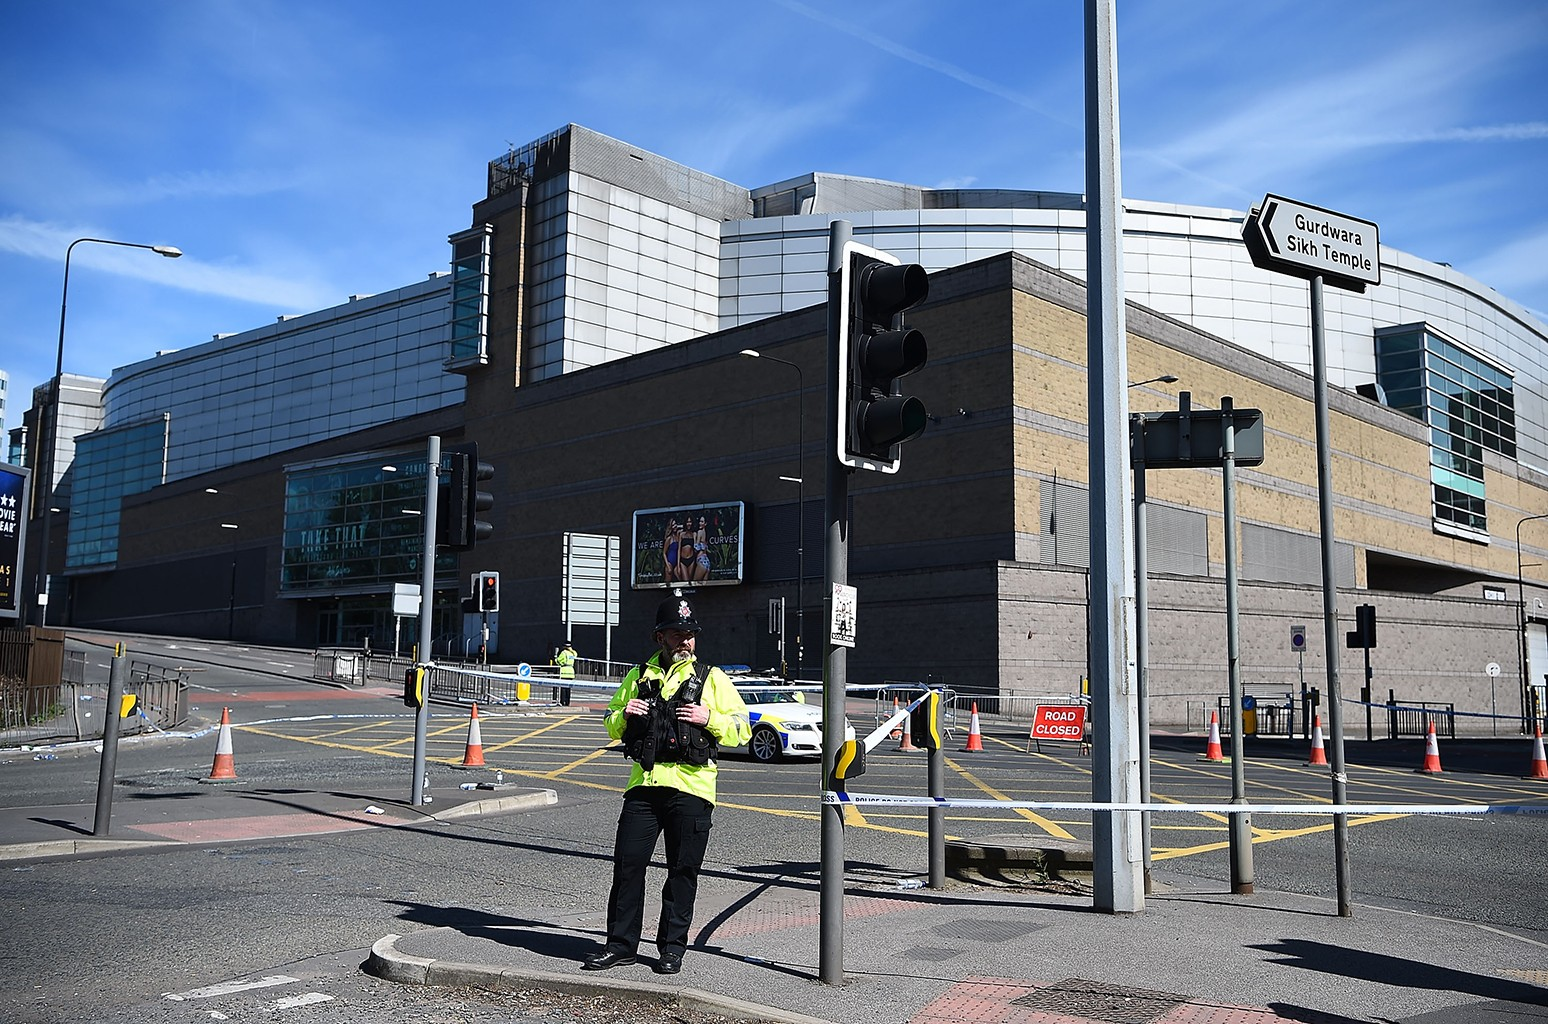 A Police officer stands guard near the Manchester Arena on May 23, 2017 in Manchester, England.  At least 22 people were killed in a suicide bombing at an Ariana Grande concert at Manchester Arena which was packed with children.